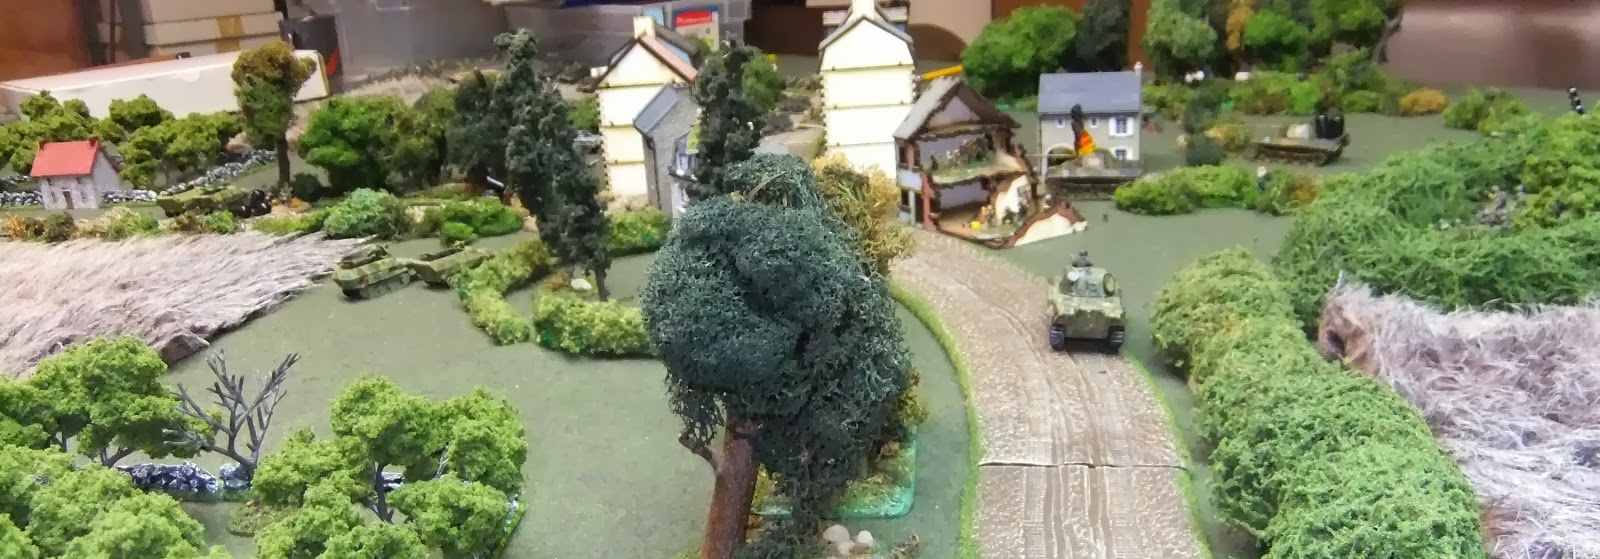 End of game, view from German table edge